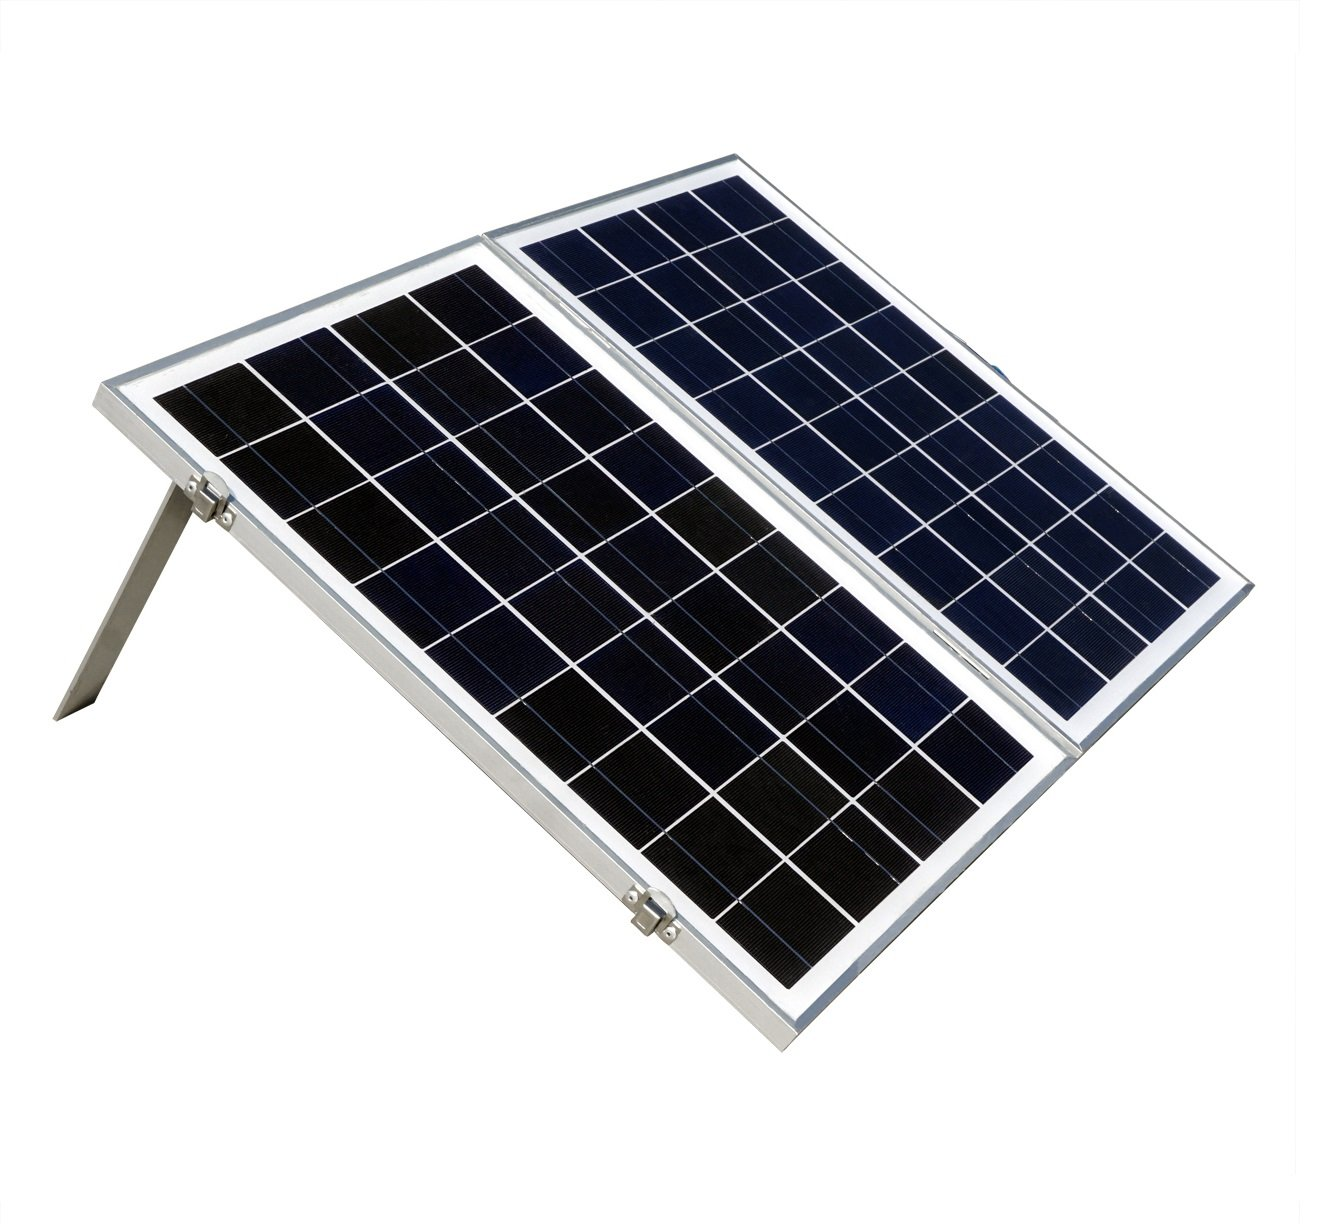 Eco Worthy 40w 12v Solar Charger Kits Portable Folding It Take To Fully Charge With The Panel Circuit Schematic 3 Module Amp Controller For Rv Boat Garden Outdoor